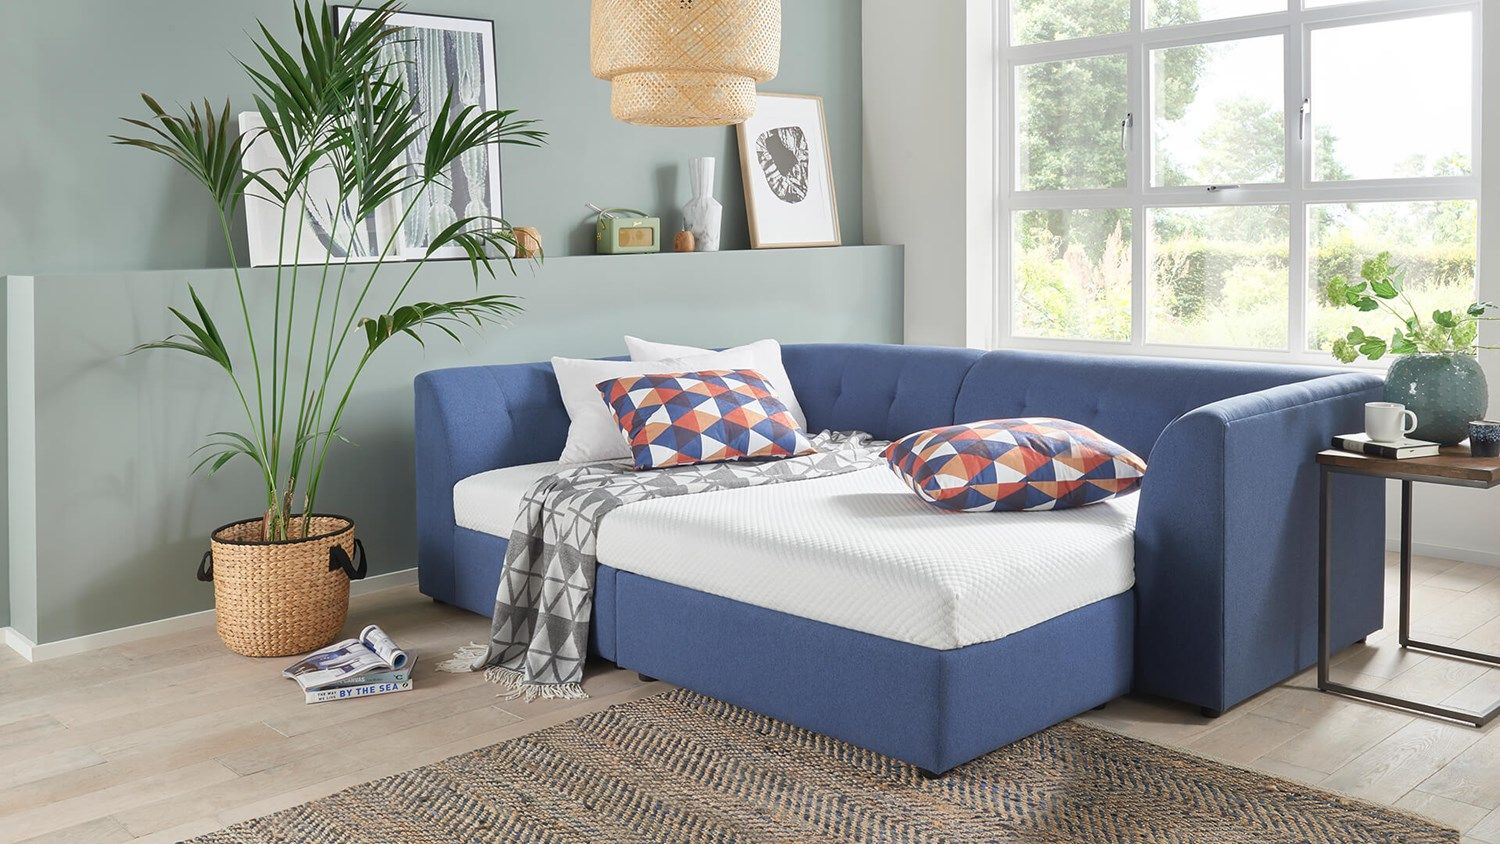 Get The Best In Both World Functionality And Elegance With Corner Sofa Beds Sofa Decor Sofa Design Comfortable Sofa